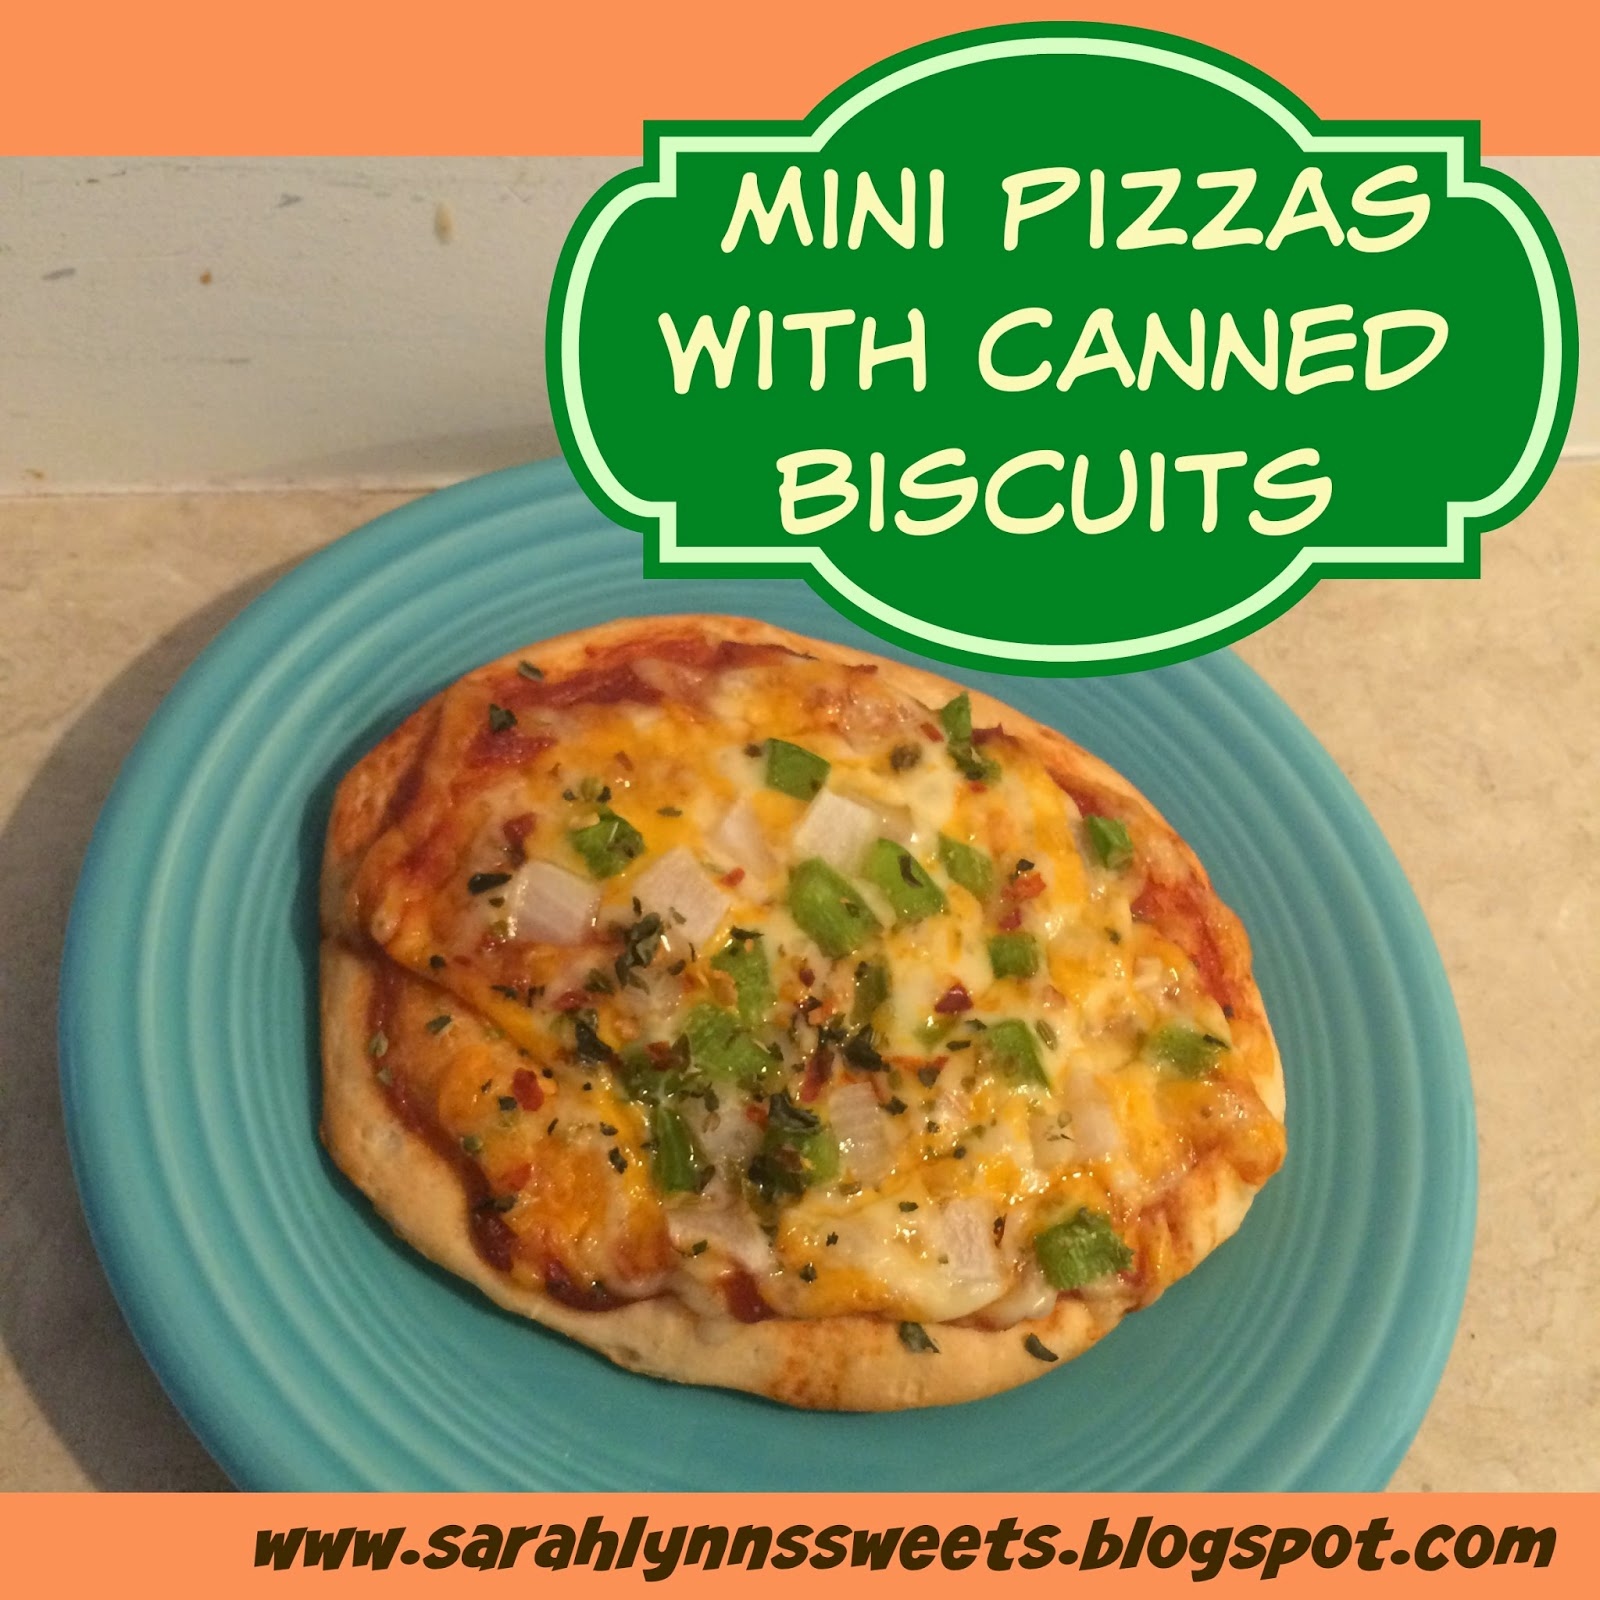 Pre-heat oven according to biscuit package instructions. Place biscuits on a large into a mini pizza, leaving a small lip around the conbihaulase.cf a teaspoon, place topping before adding cheese.